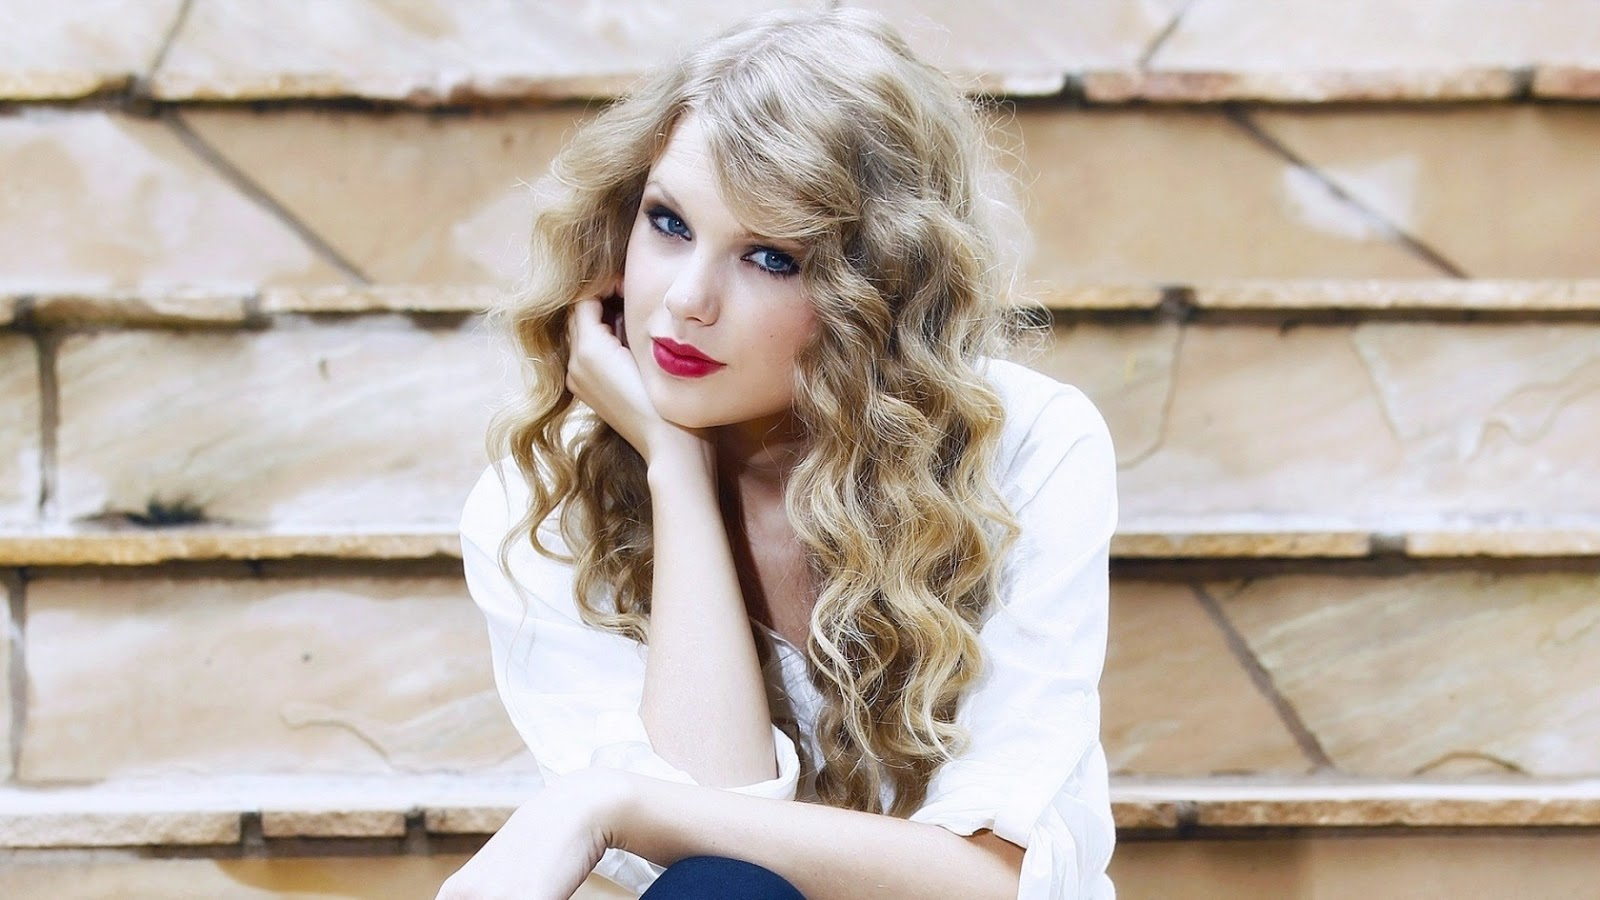 Taylor swift latest hd wallpapers 2013 all about hd wallpapers taylor swift voltagebd Gallery